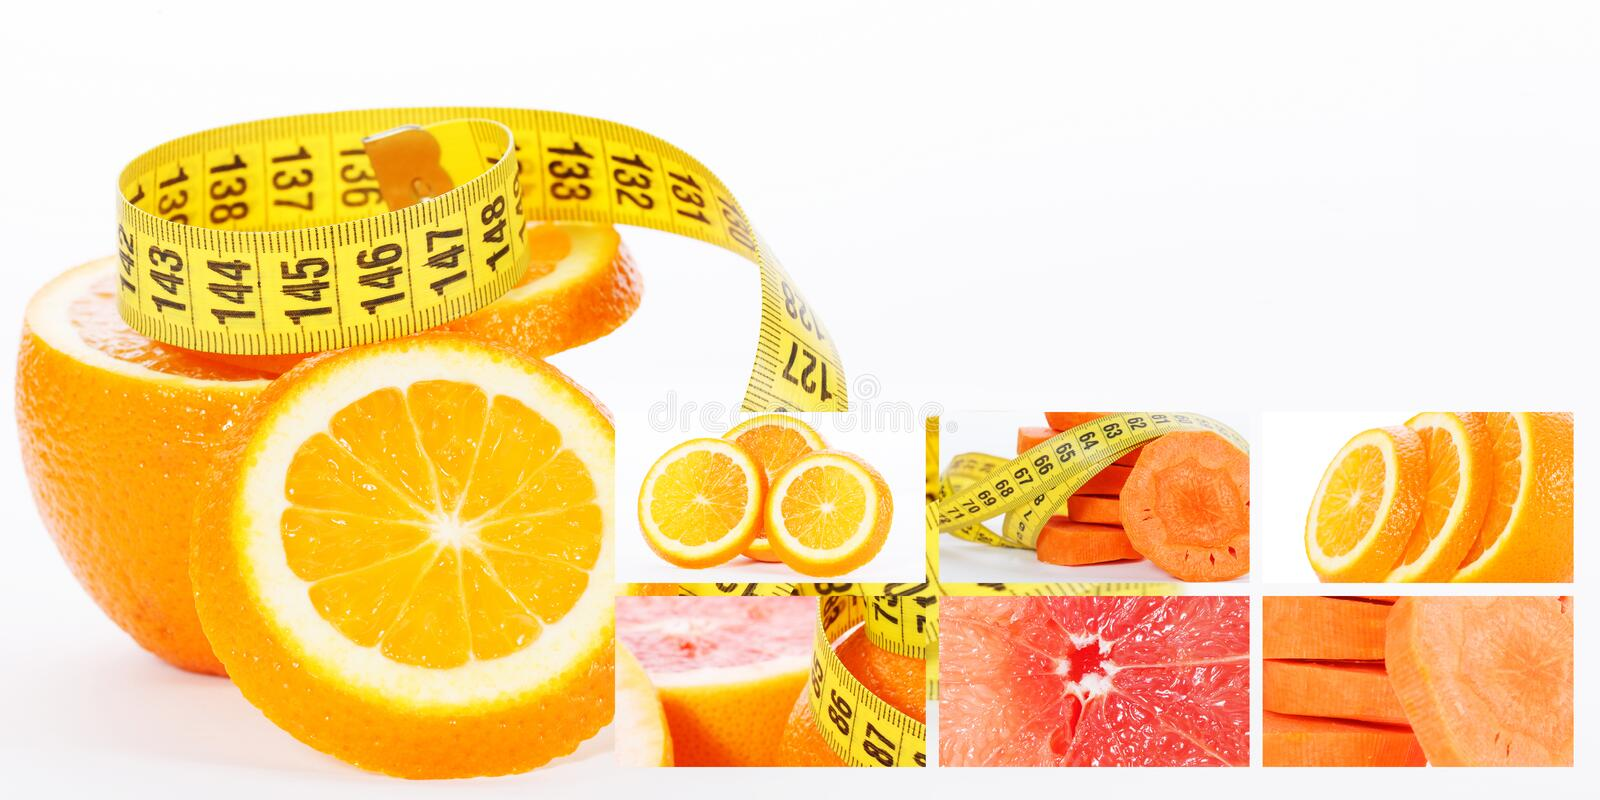 Orange with measuring tape. Health concept with carrot grapefruit and slices of oranges stock image